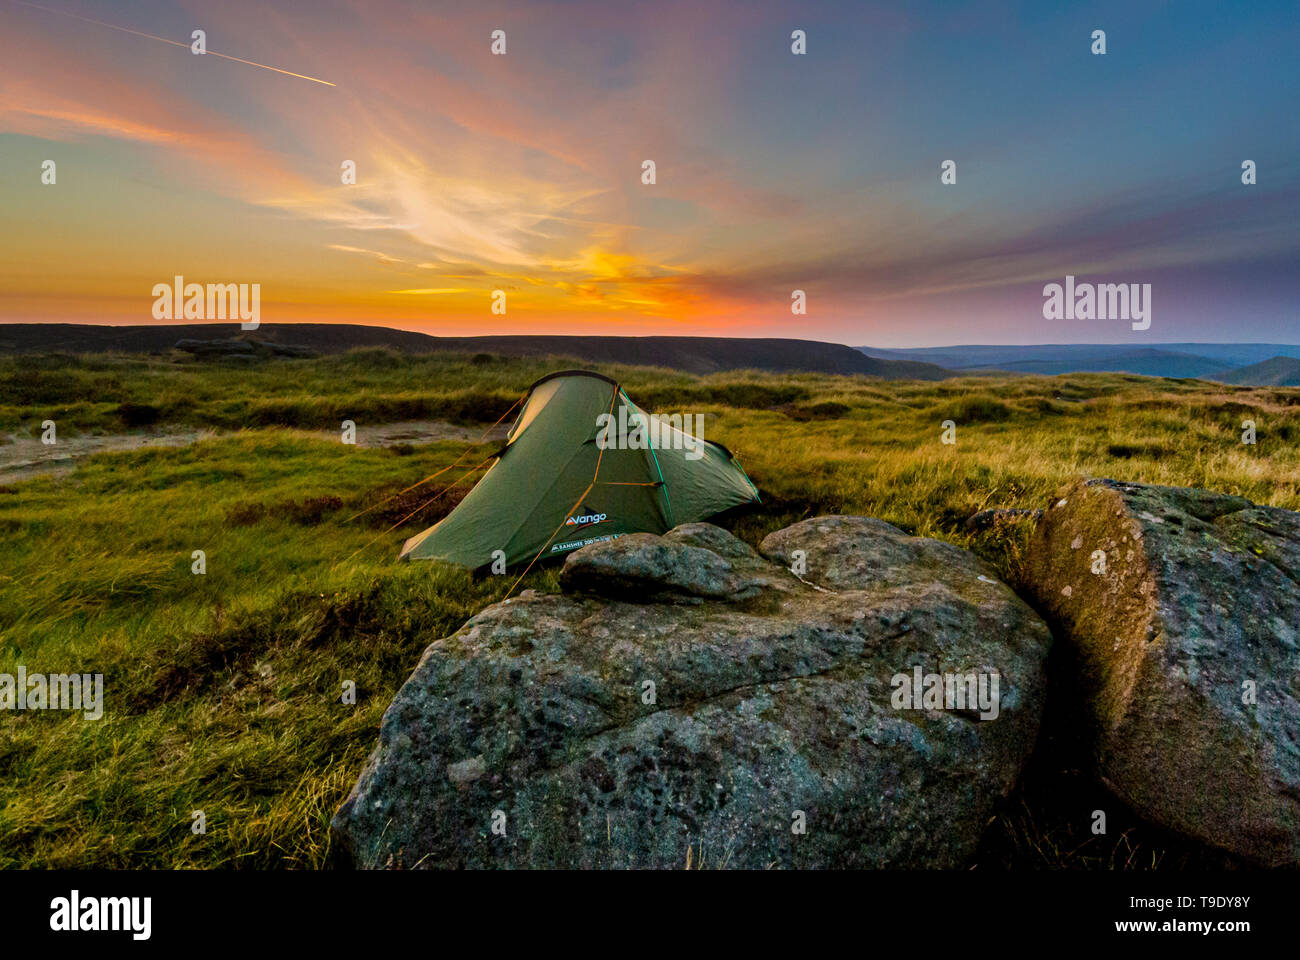 Wild Camping Peak District >> Wild Camping Small Tent In Wilderness At Sunrise Peak